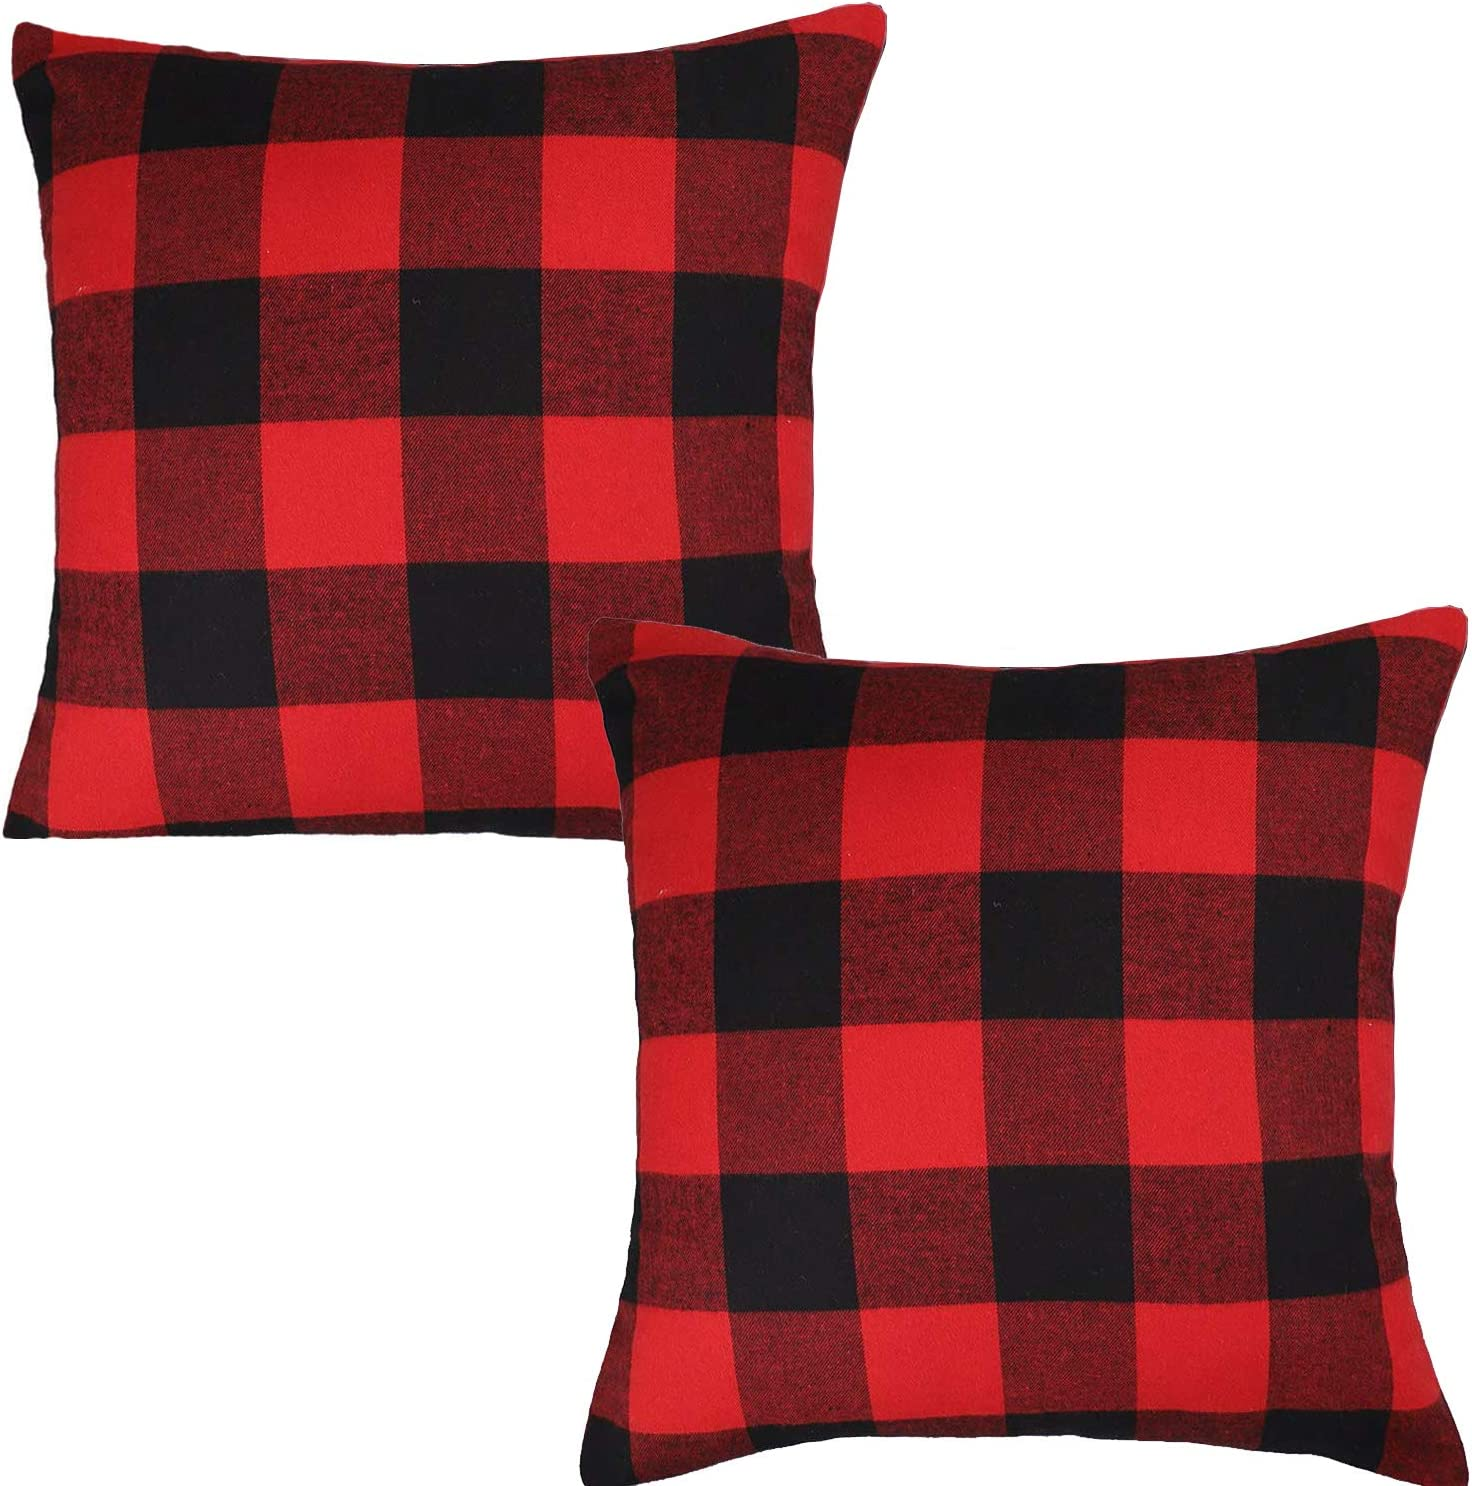 Amazon Com Jashem Plaid Throw Pillow Cover 18x18 Inch Cotton Cushion Black And Red Buffalo Check Case For Modern Home Decor Set Of 2 Big Kitchen